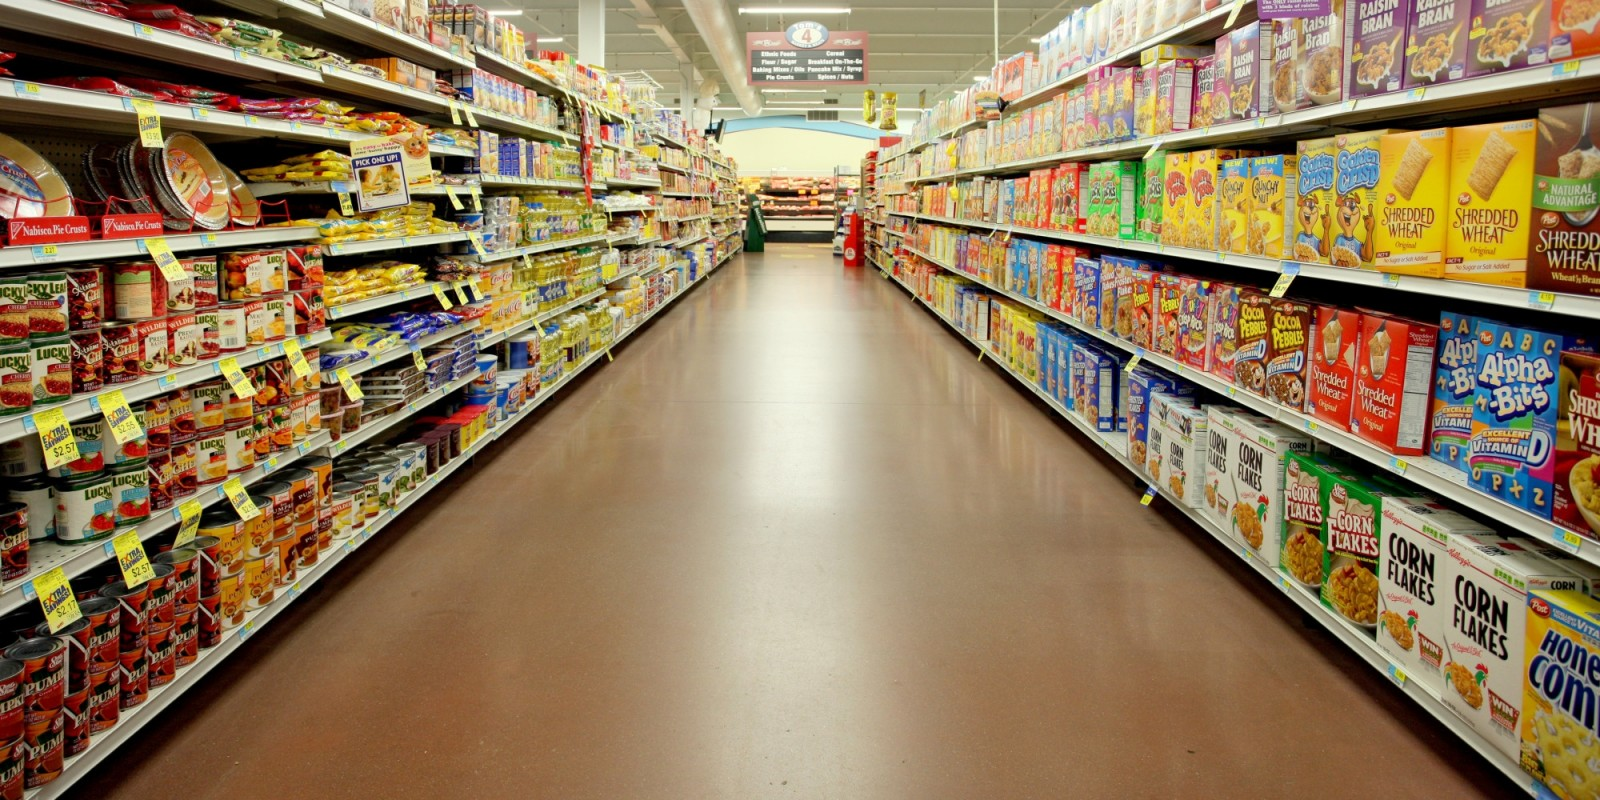 How many years could you survive inside a supermarket?